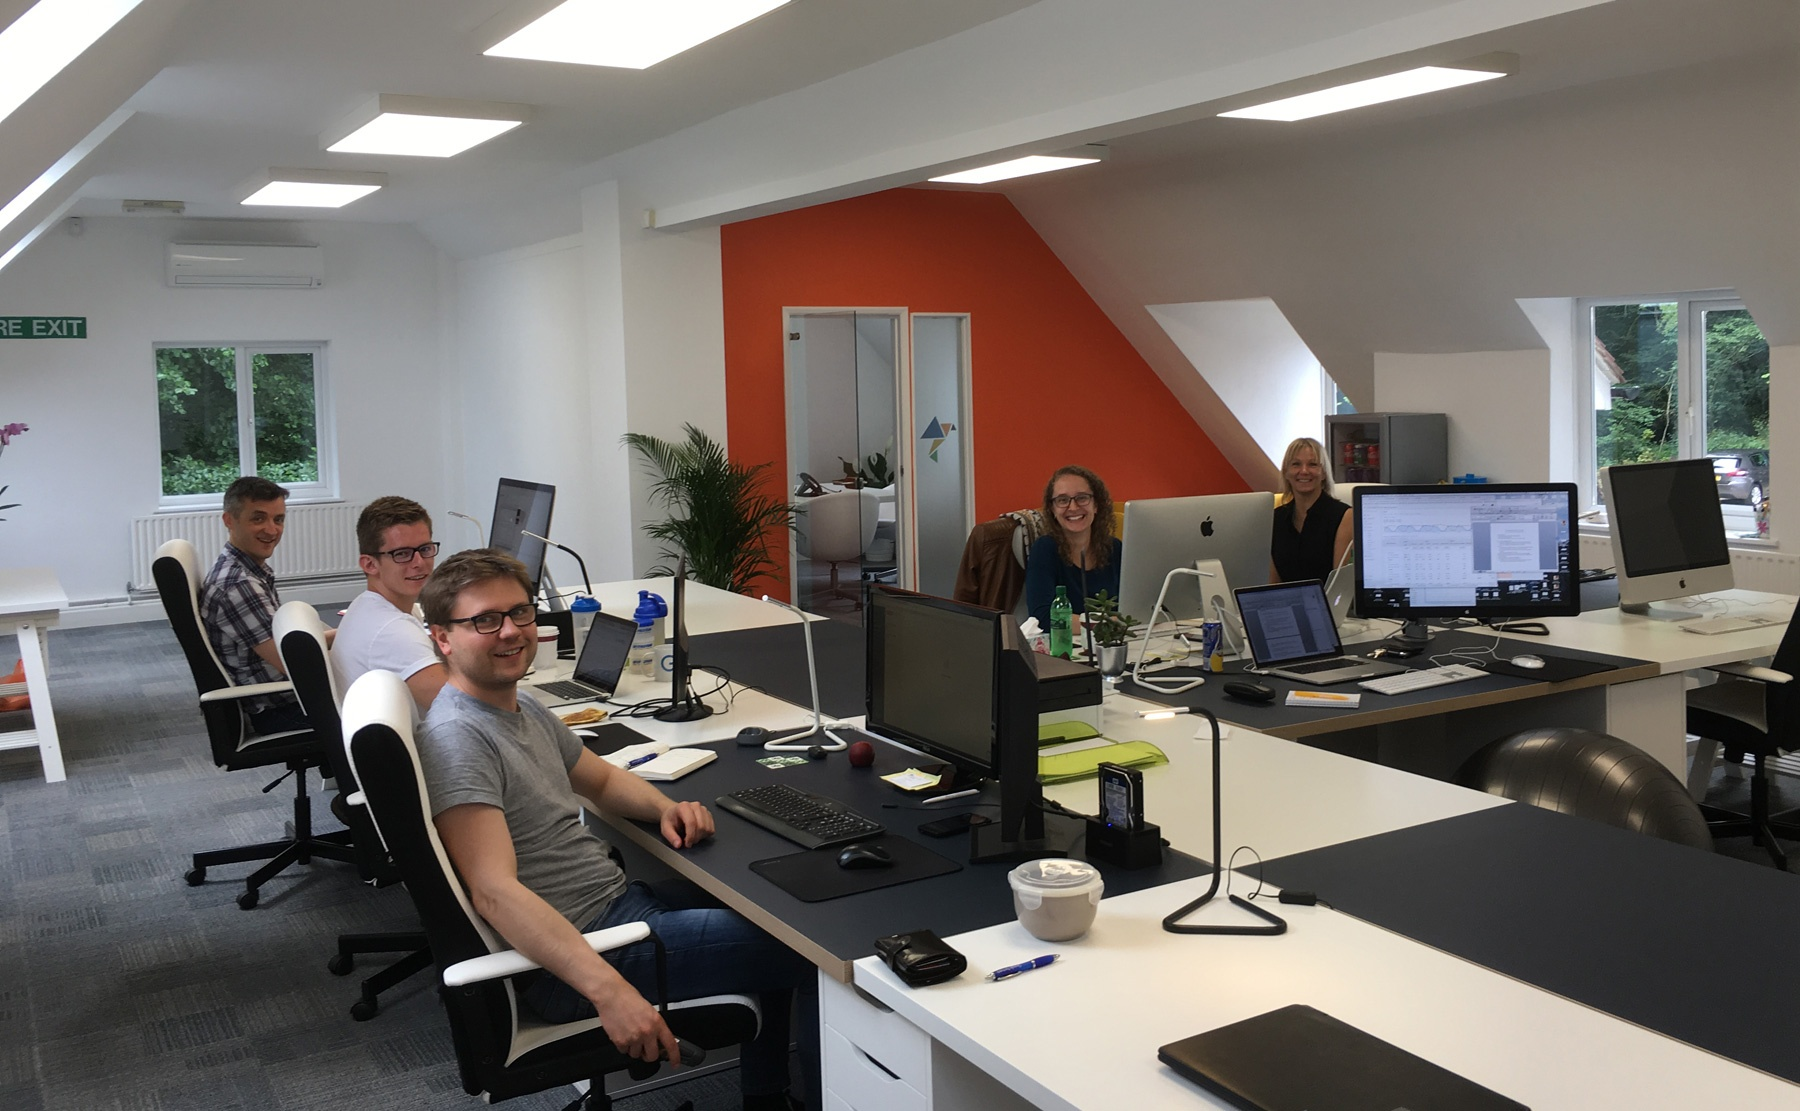 Surrey's leading digital marketing team, Innovation Visual, in their new offices in Surrey